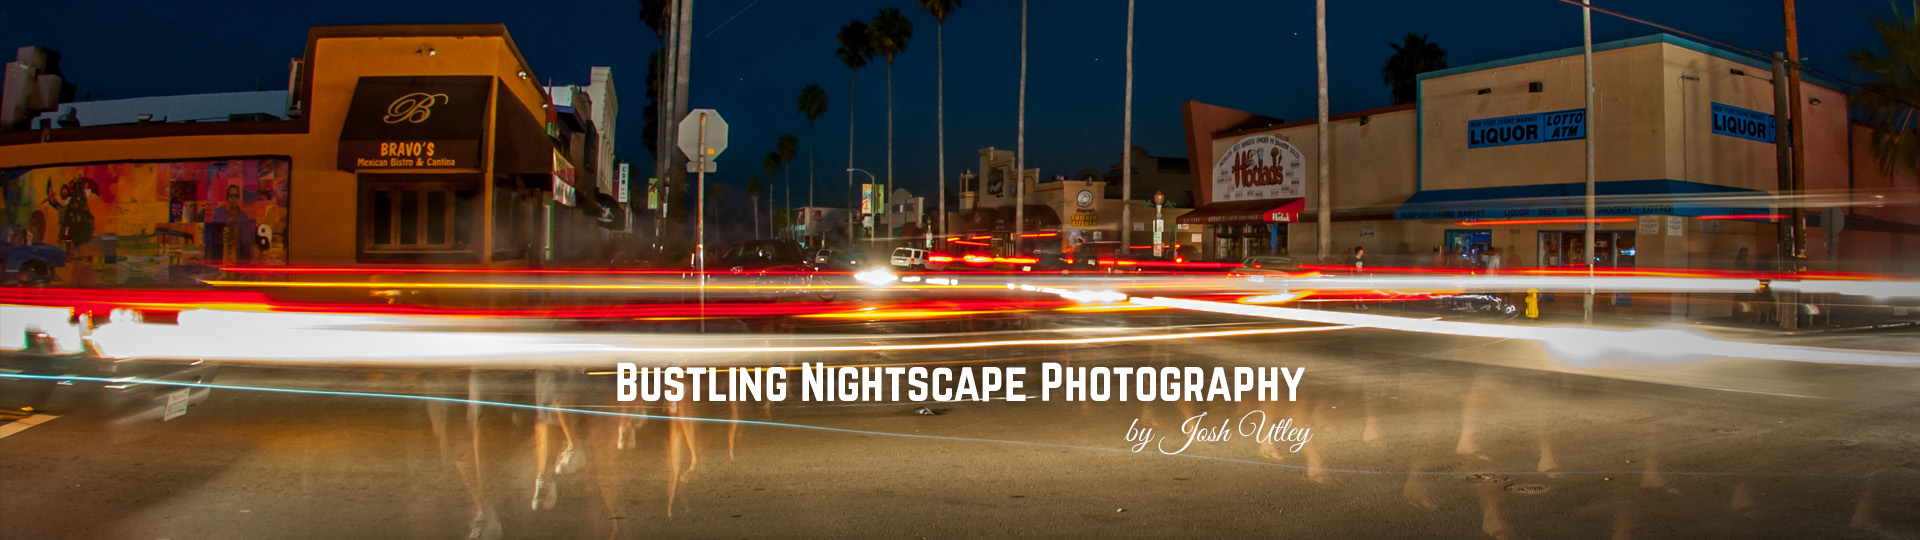 Bustling Nightscape Photography by Josh Utley